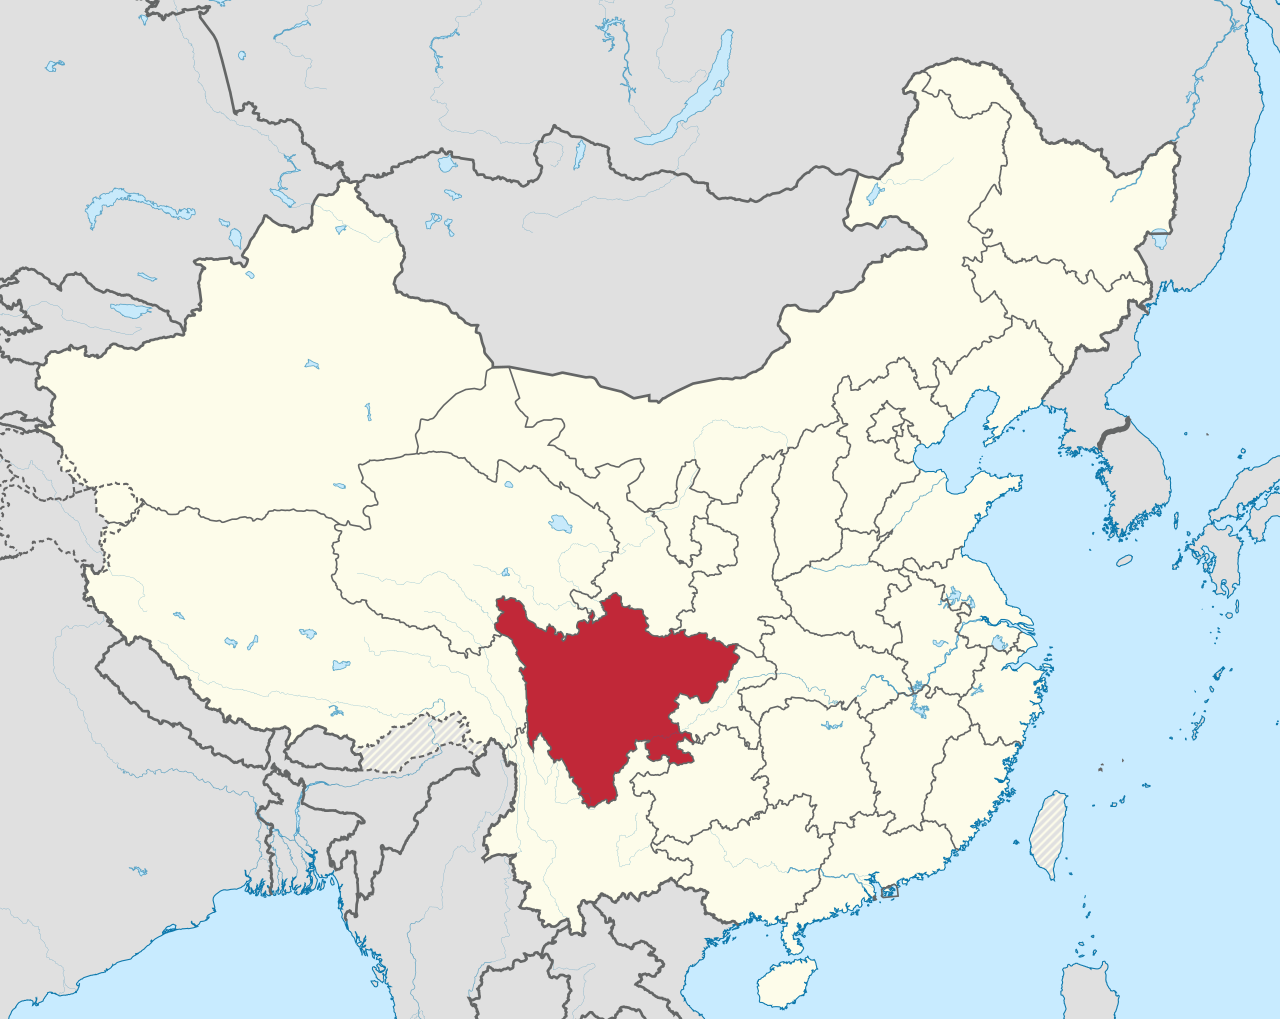 Sichuan province in China is home to a large number of Bitcoin miners due to the low cost of hydroelectric power. Source: Wikipedia.